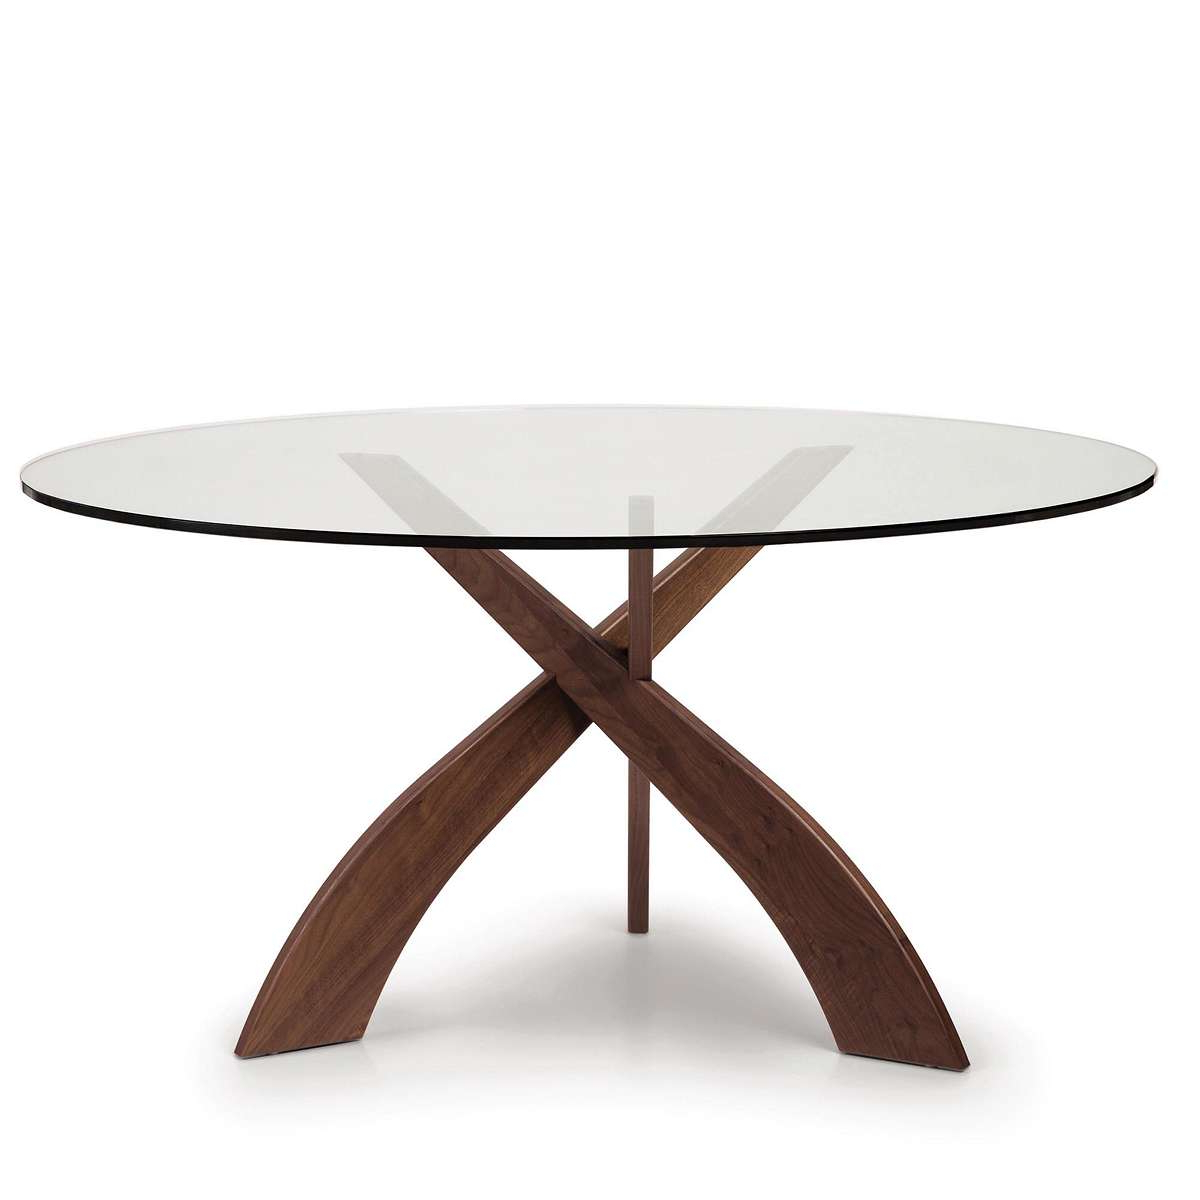 Entwine Round Glass Top Dining Table with regard to Well known Round Dining Tables With Glass Top